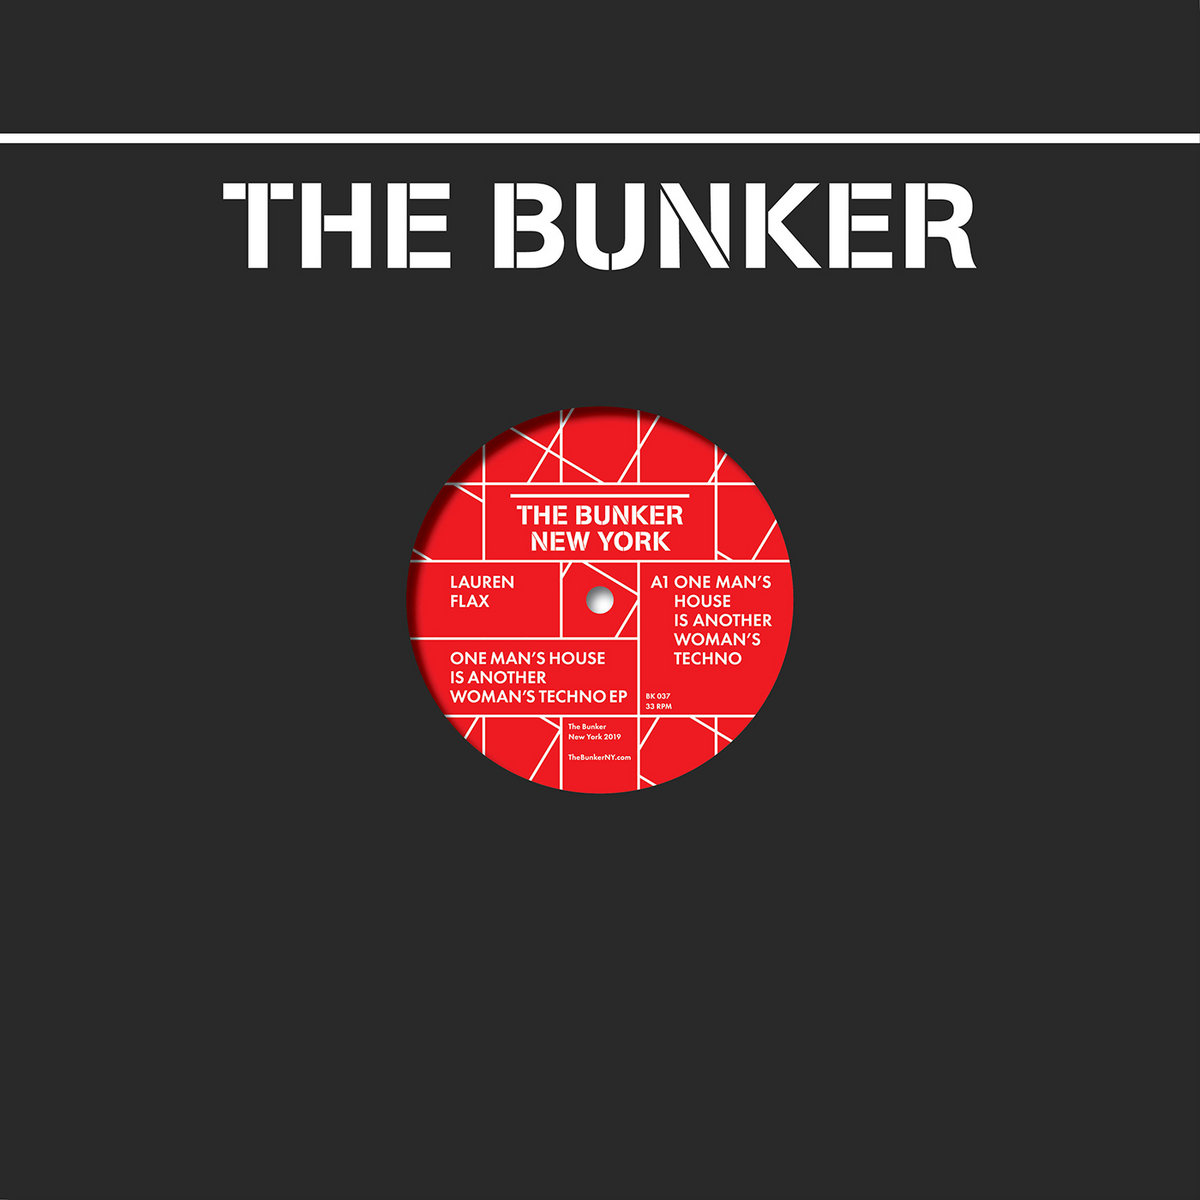 One Man's House is Another Woman's Techno EP (The Bunker New